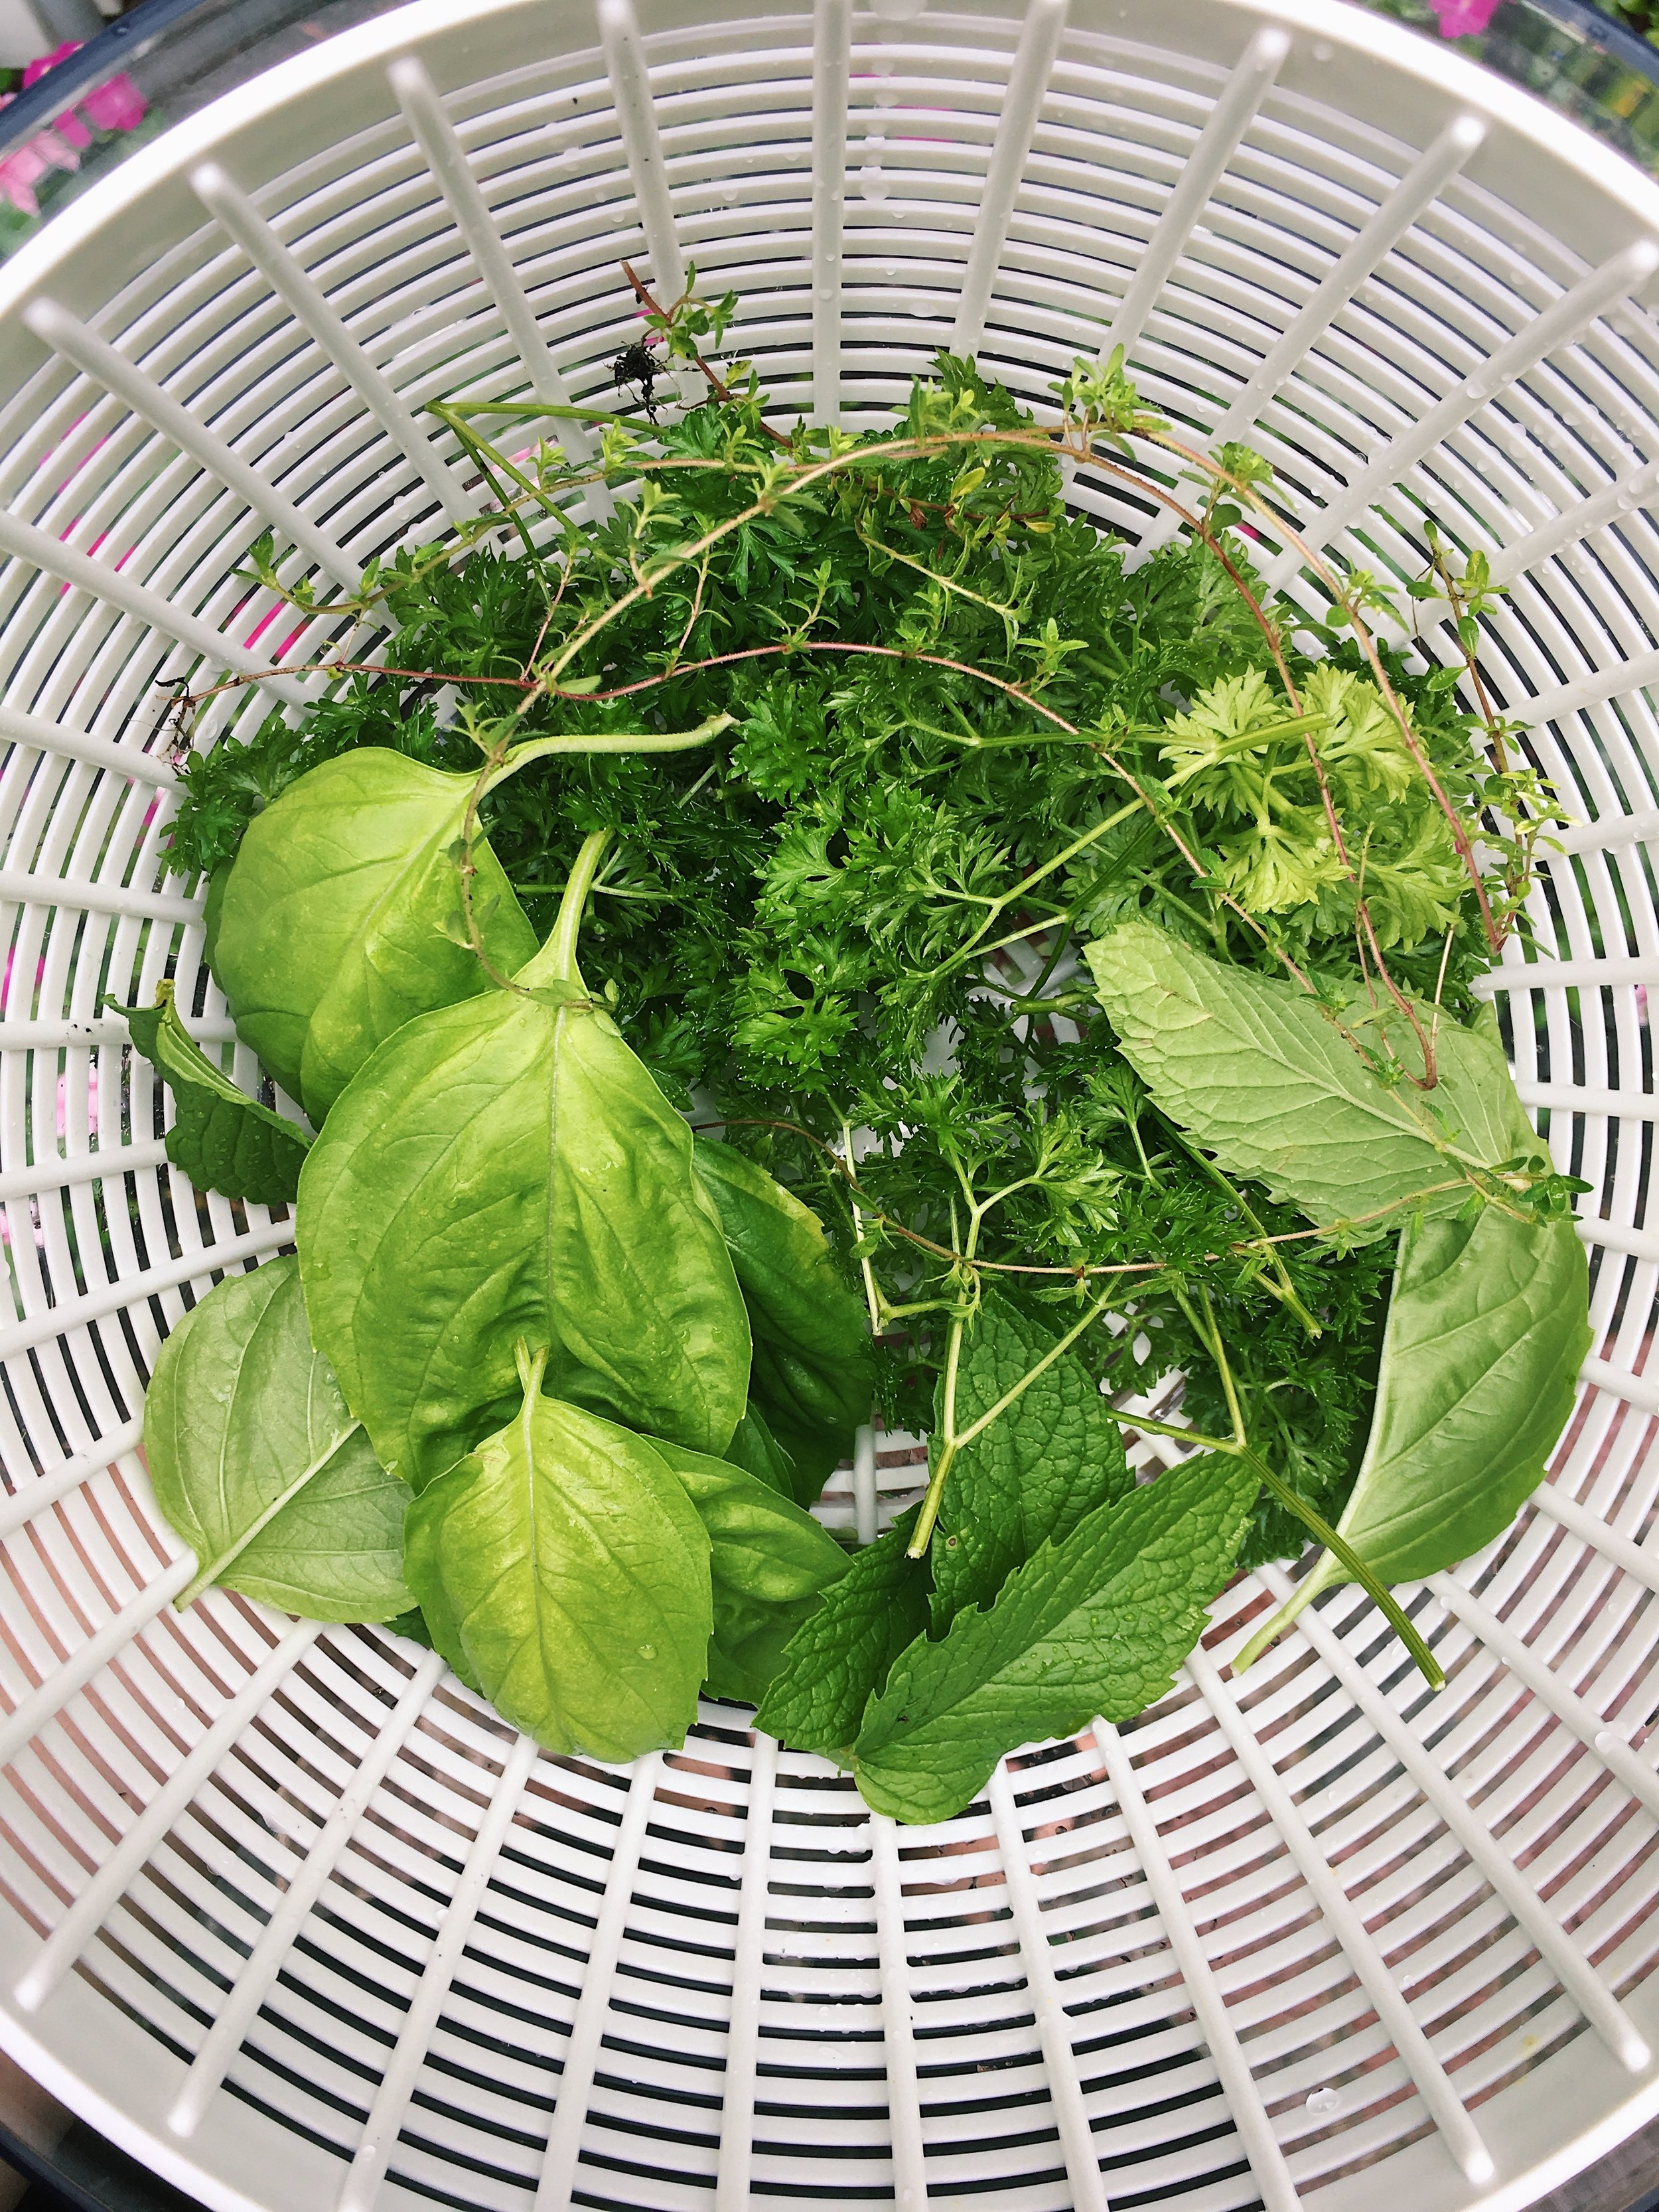 Salad Spinner - No need for pre-packaged and washed salad greens.A salad spinner allows you to clean and dry lettuce and herbs. Good for right out of the ground, dirty and delicate lettuce.Click Here for inspiration